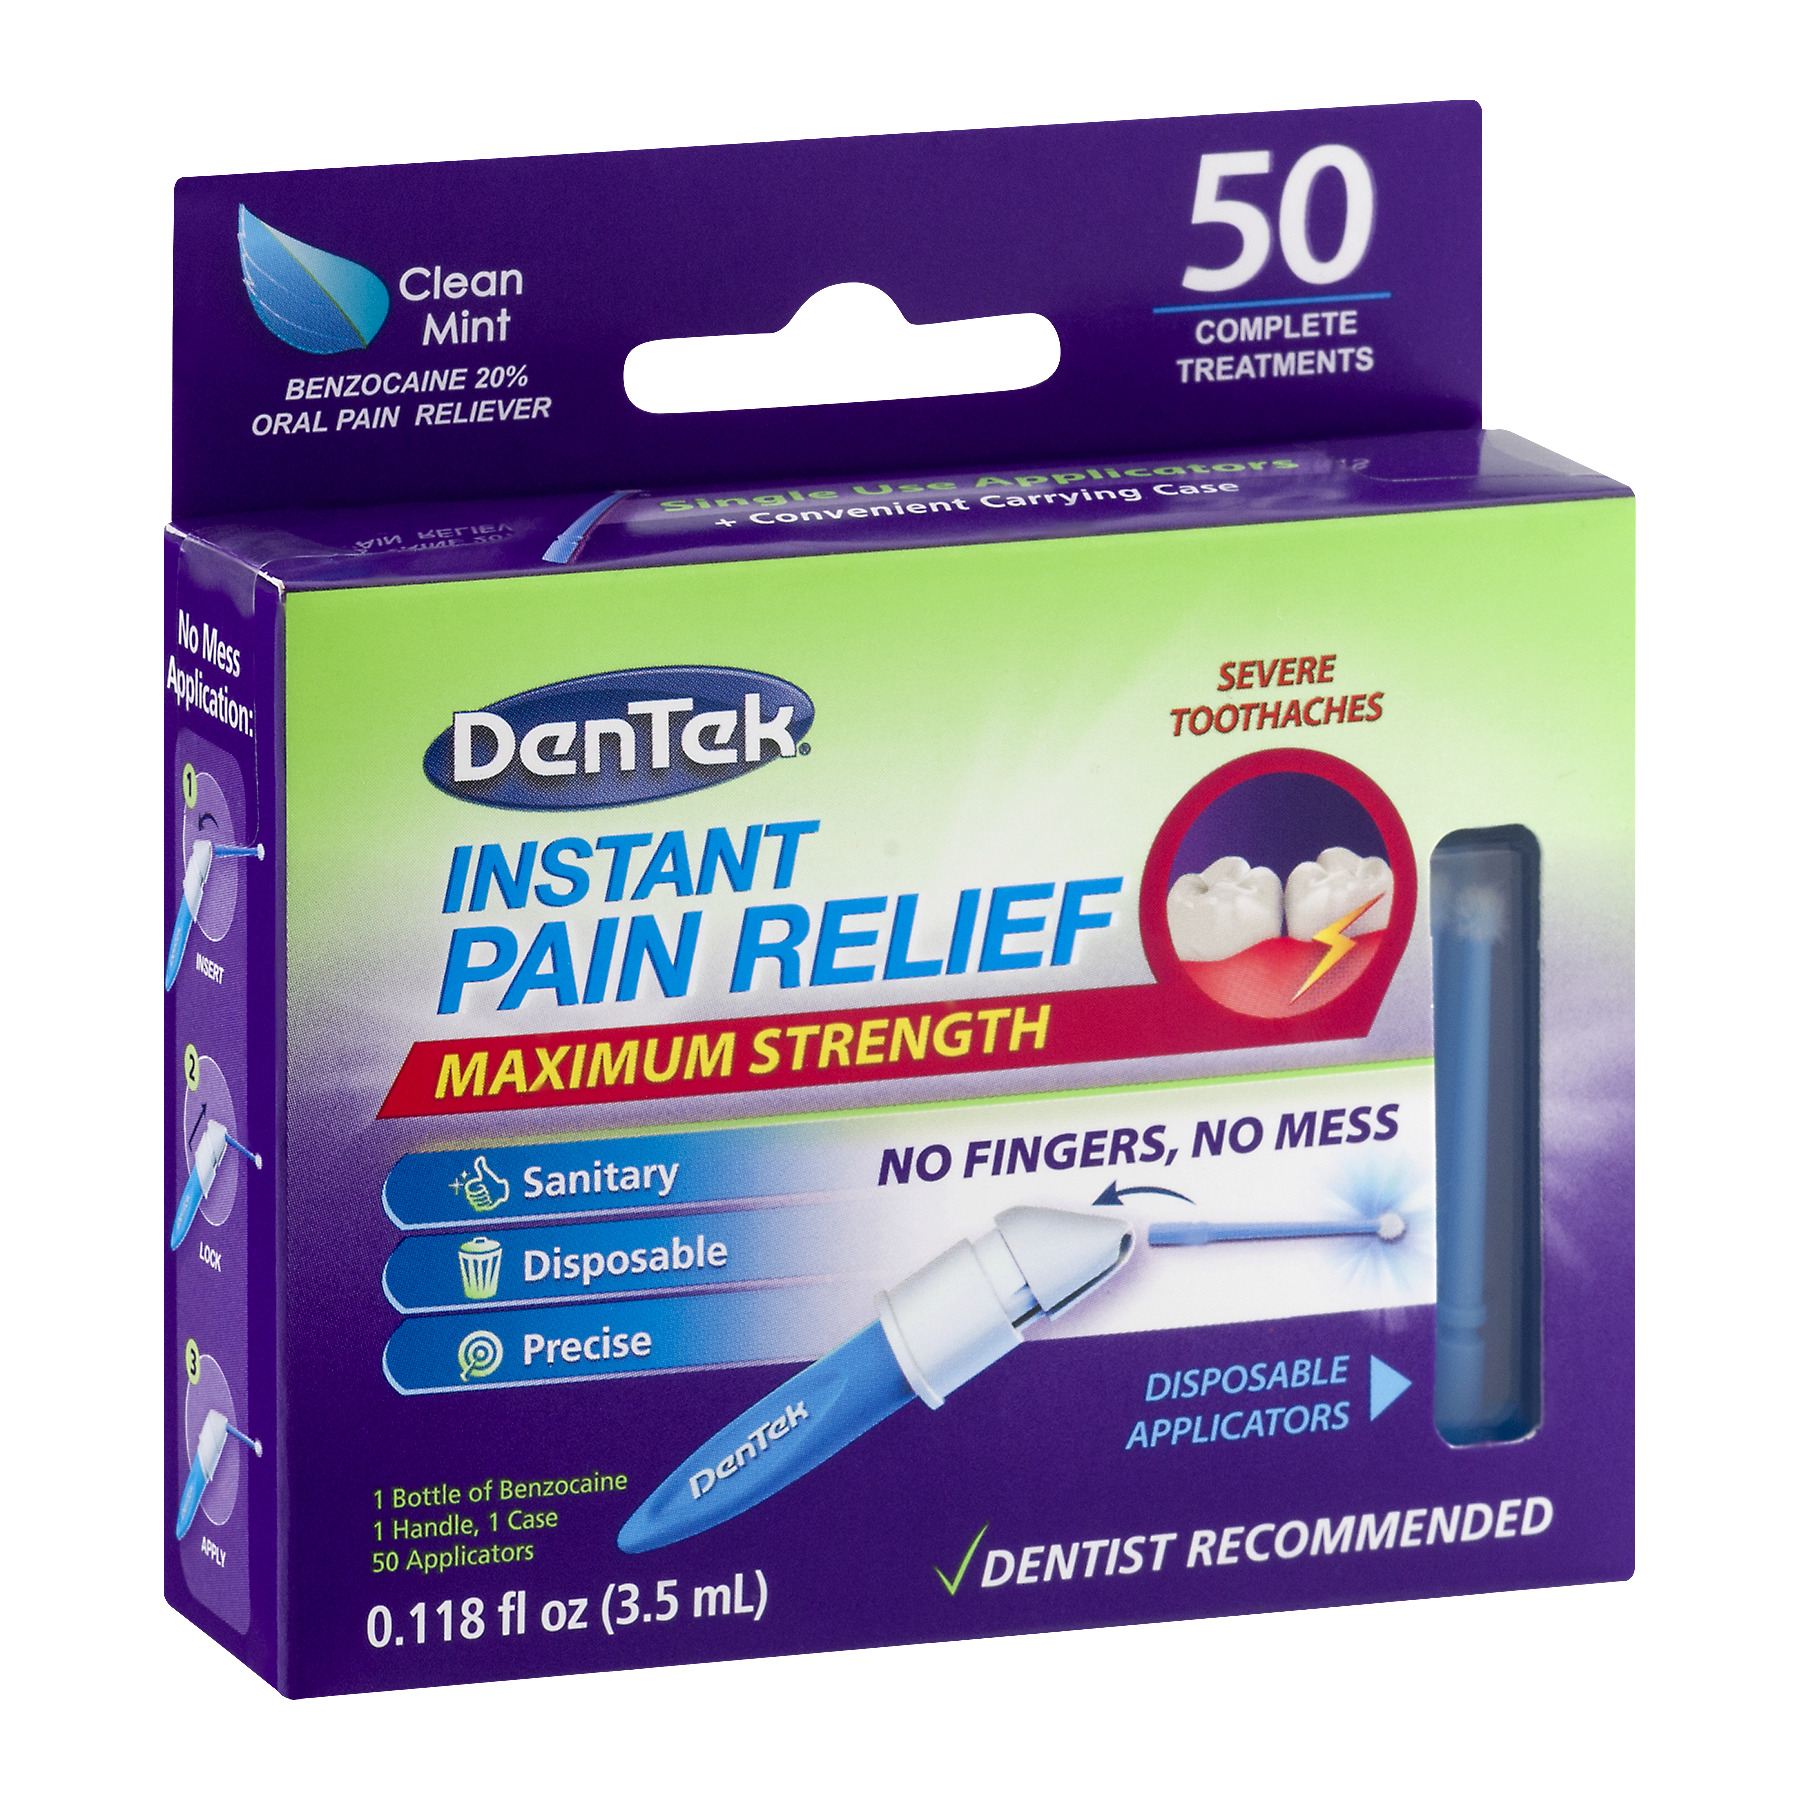 Dentek Instant Pain Relief Maximum Strength Benzocaine 20 Reliever Complete Treatments 50 Ct